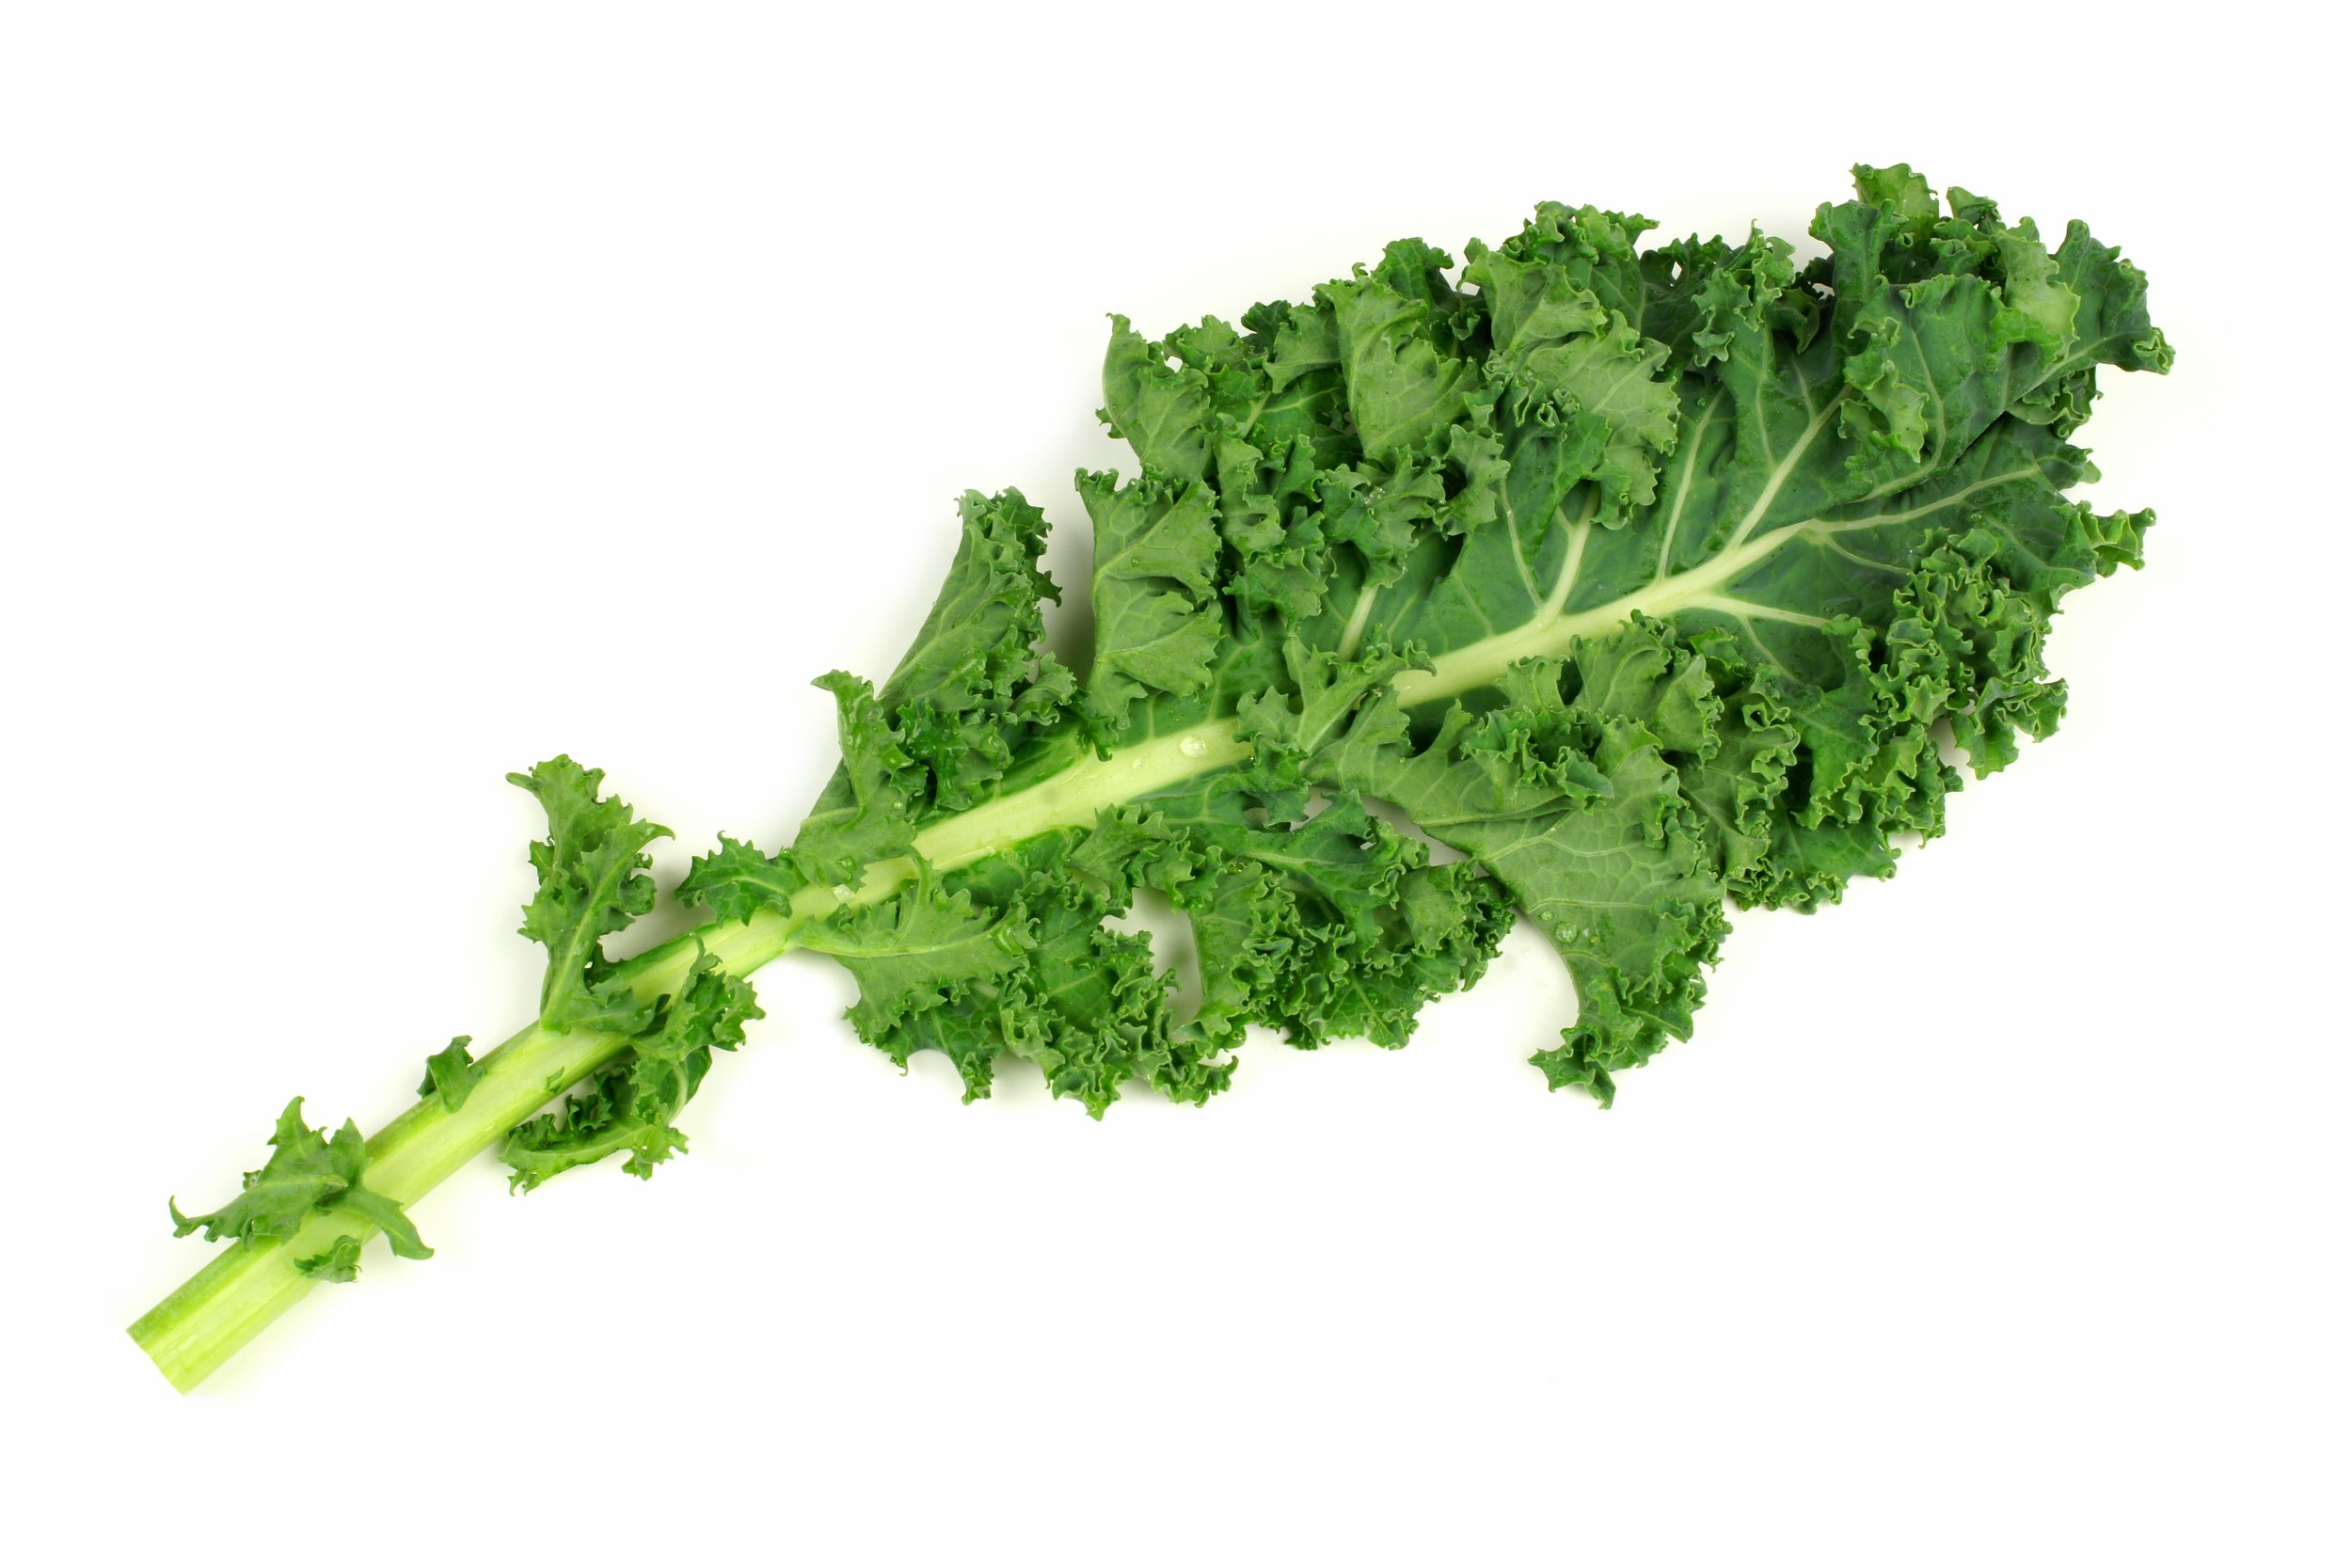 - Lutein is a natural carotenoid found in leafy greens. It prevents eye diseases including age-related macular degeneration (AMD), cataracts, and retinitis pigmentosa. Some people also use it for preventing colon cancer, breast cancer, type 2 diabetes, and heart disease.